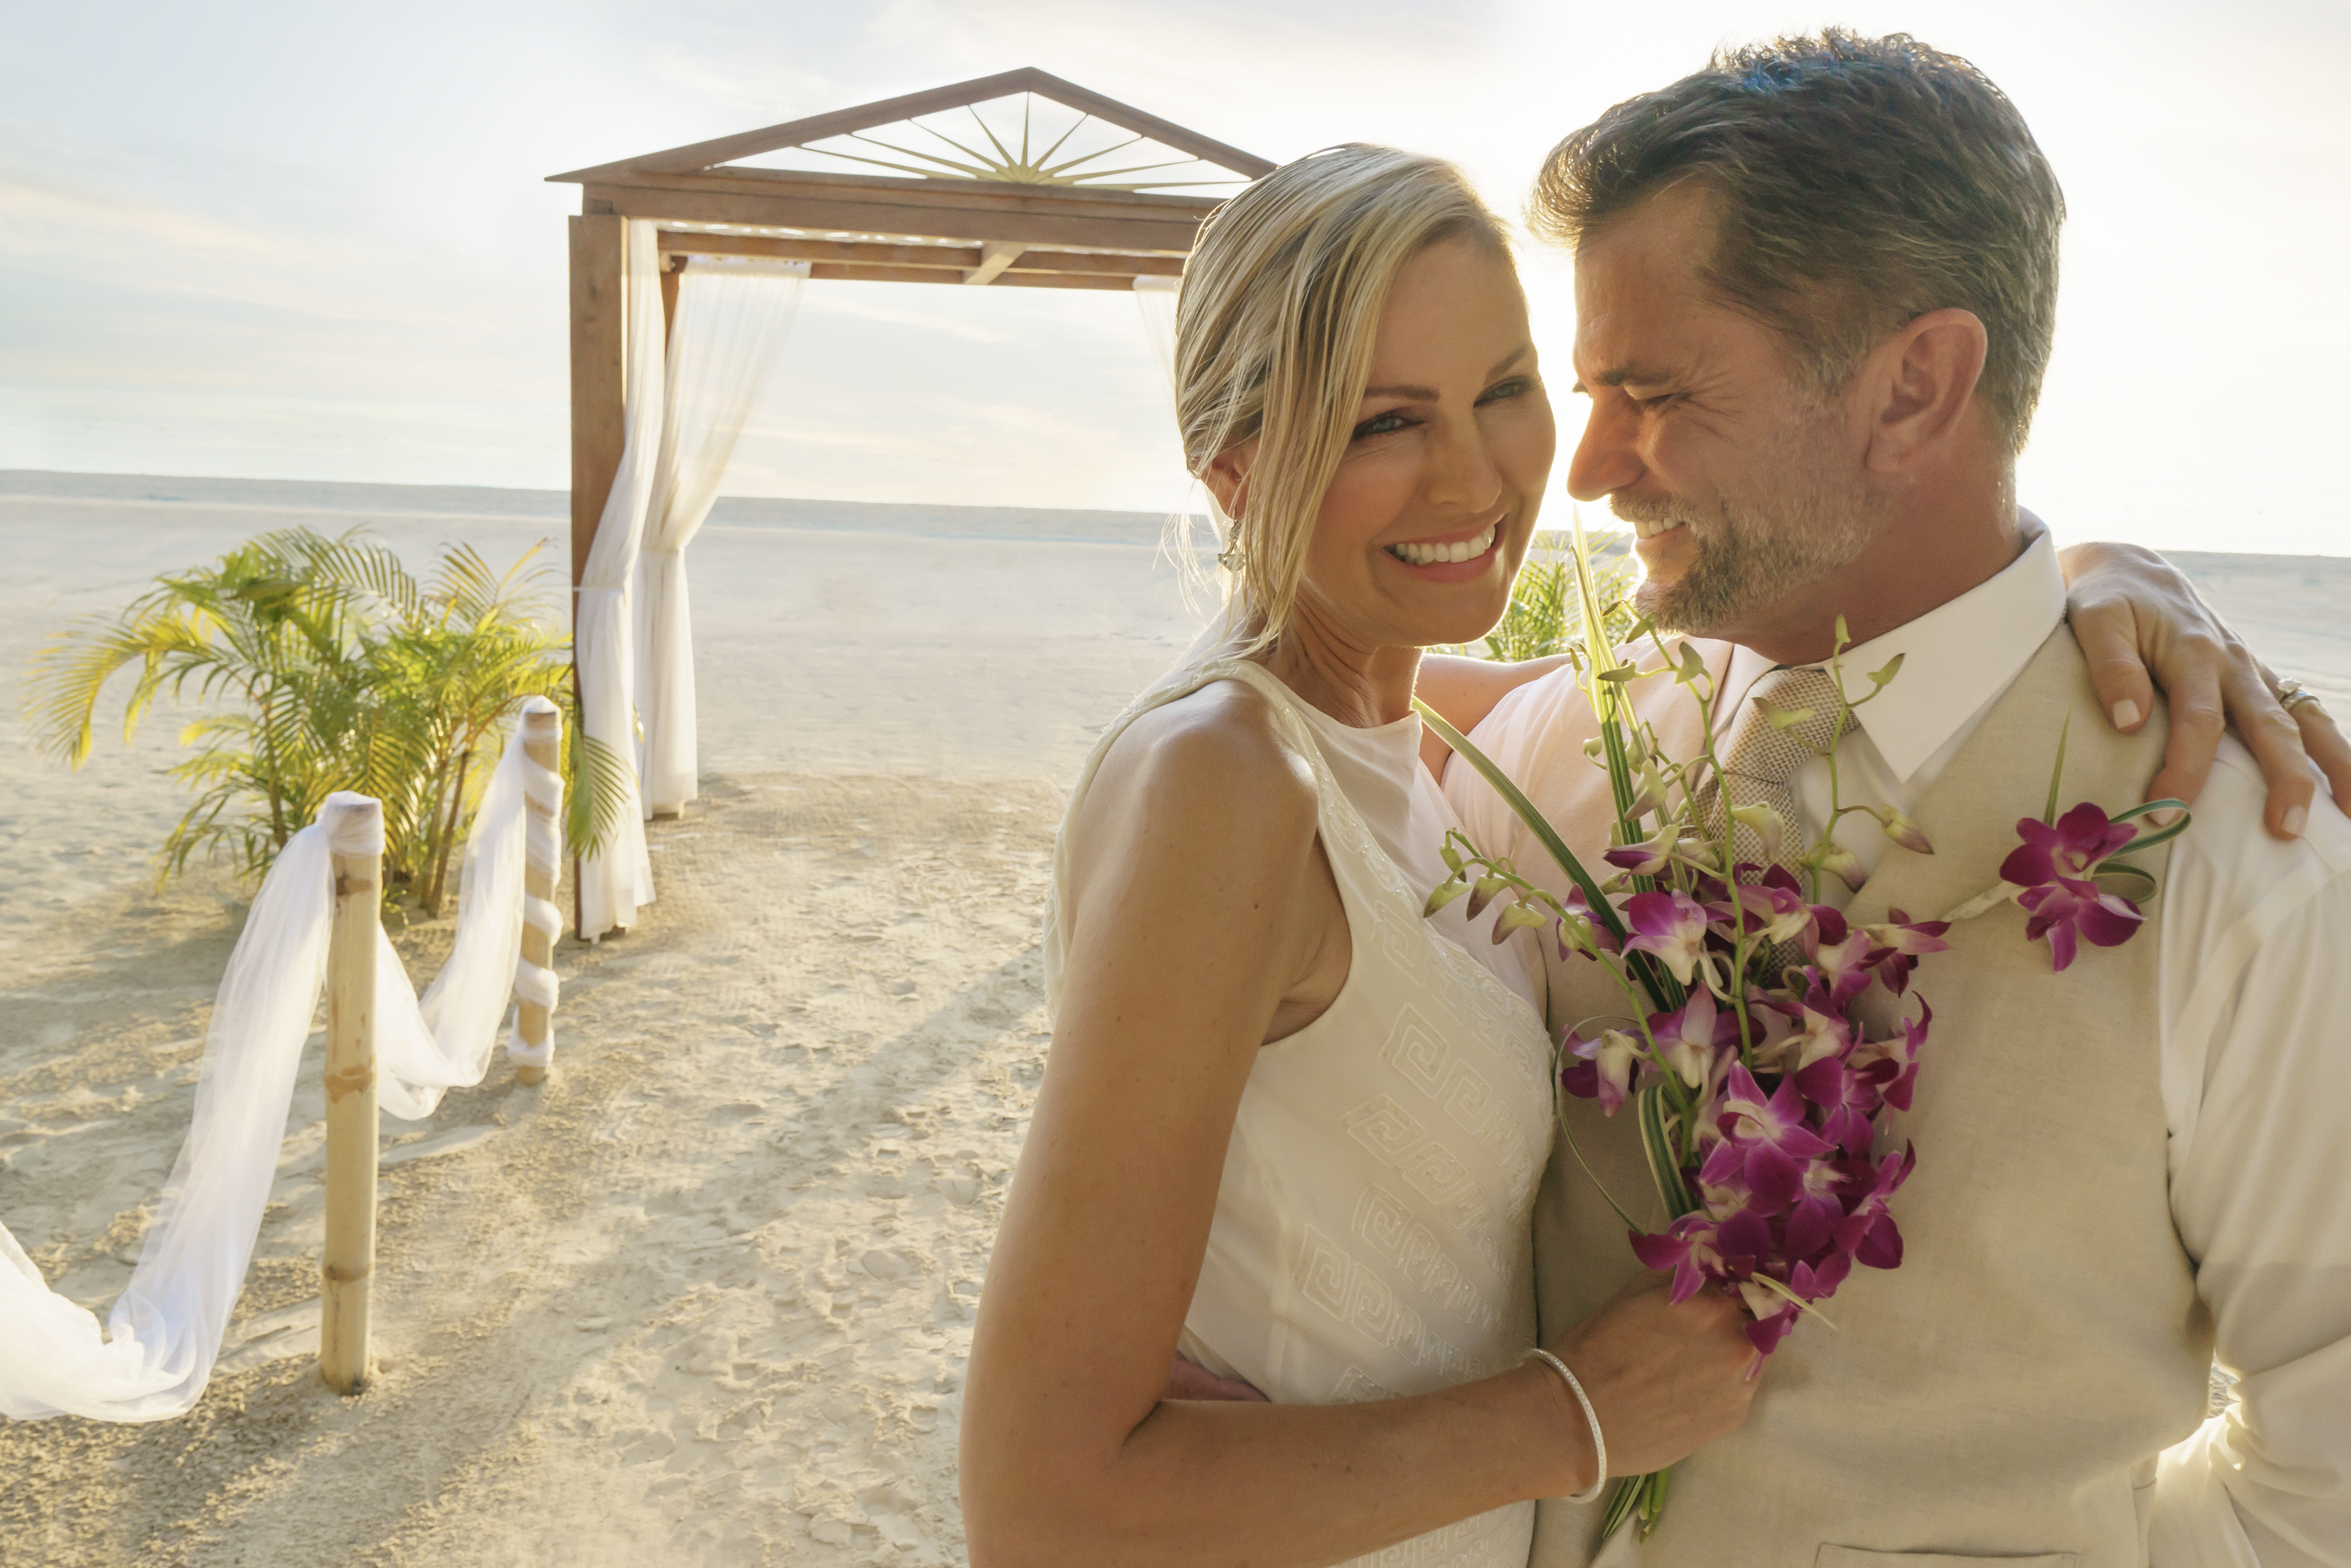 Travel Agency All-Inclusive Resort Couples Swept Away 13